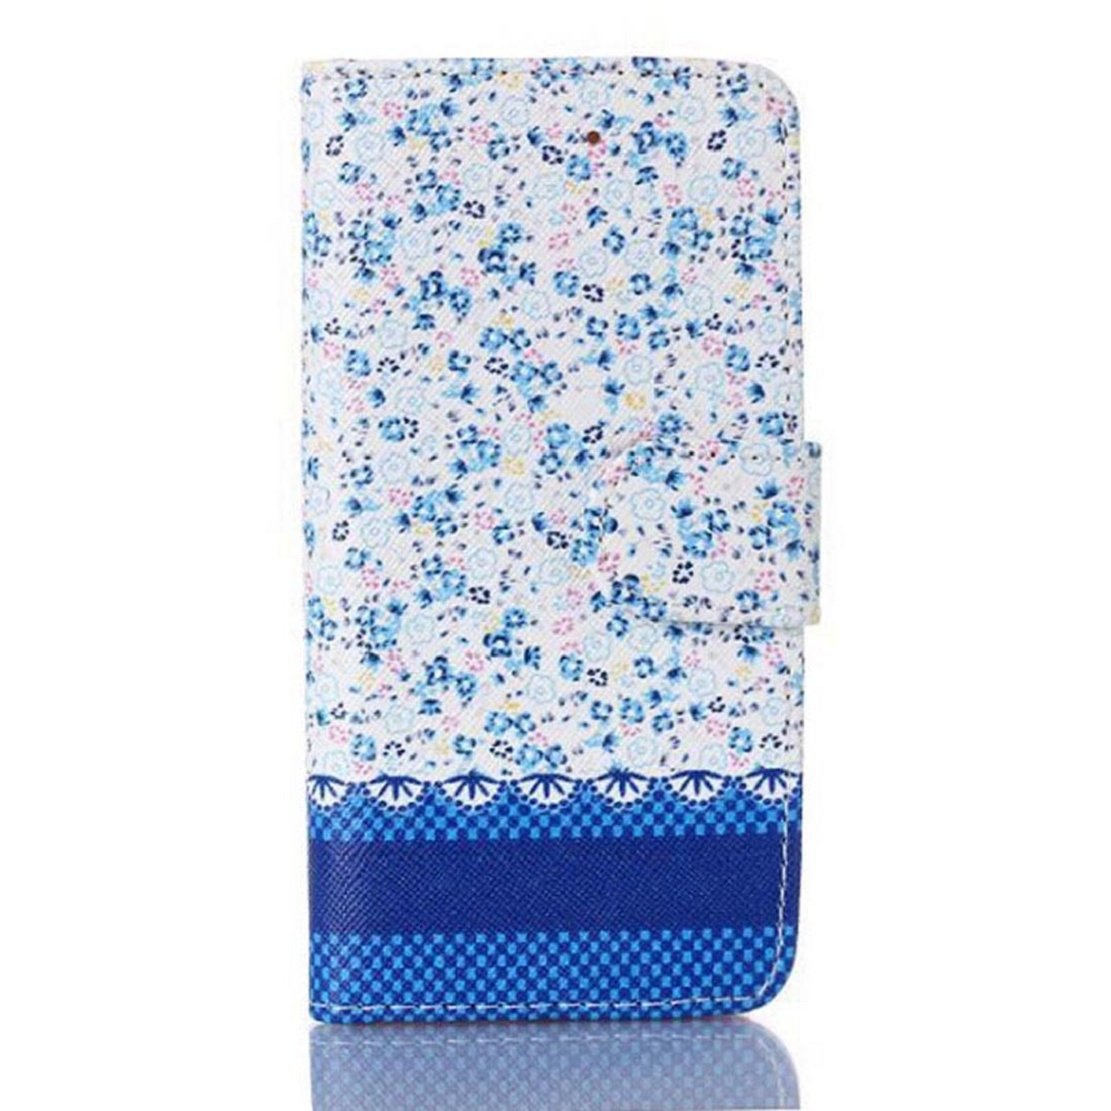 Floral Jacquard Stand Wallet Leather Cover Case For iPhone 5 5G 5S (Blue)